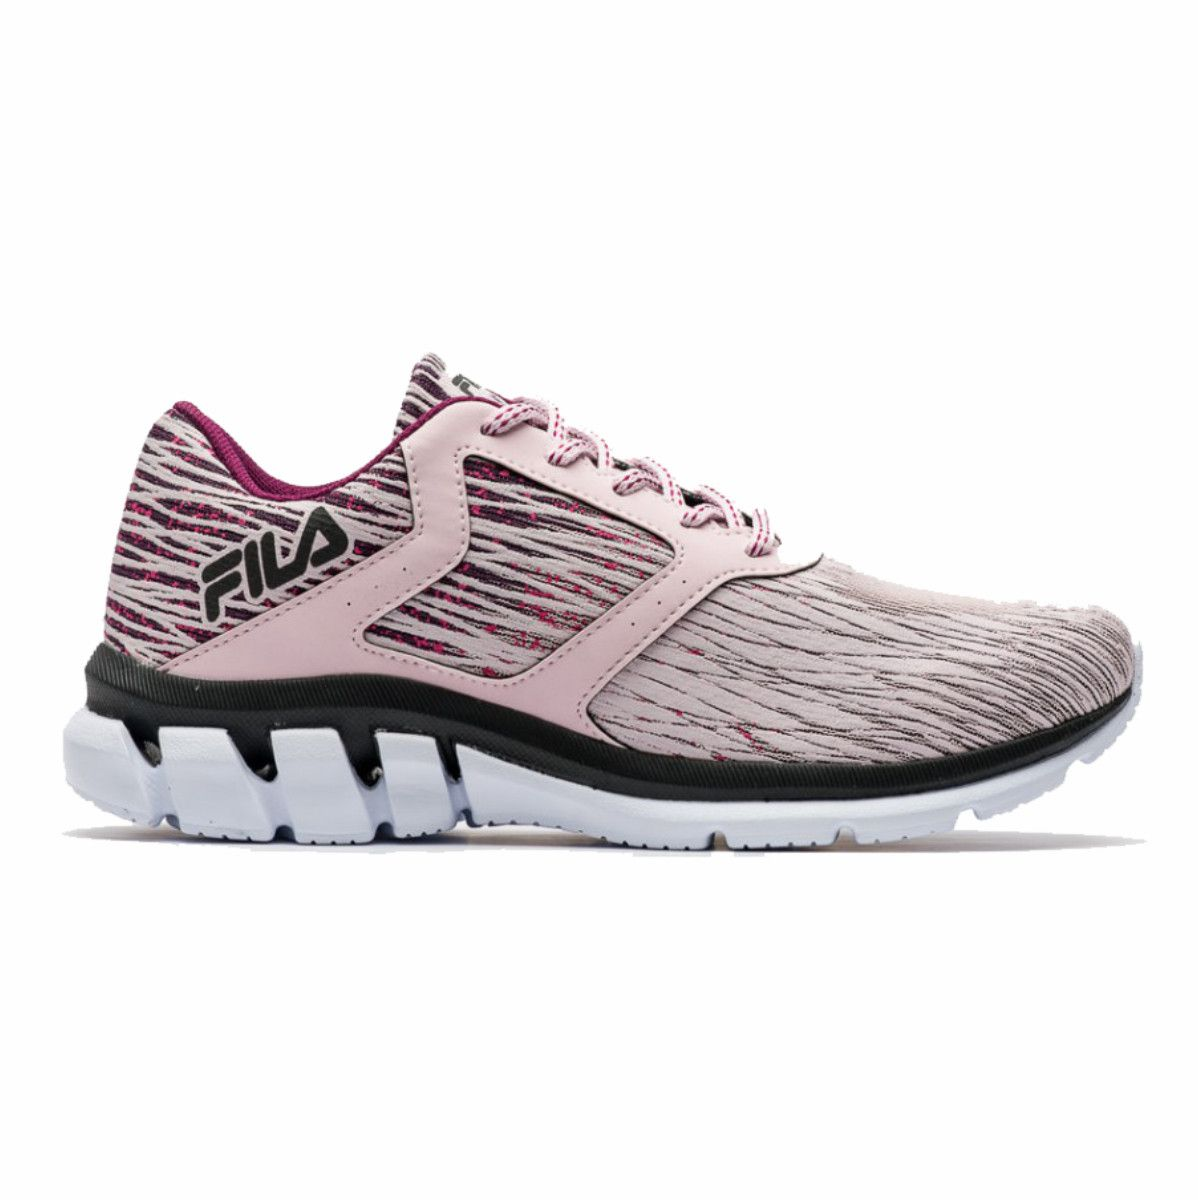 Tenis Fila Elevate Rosa Feminino Running Training